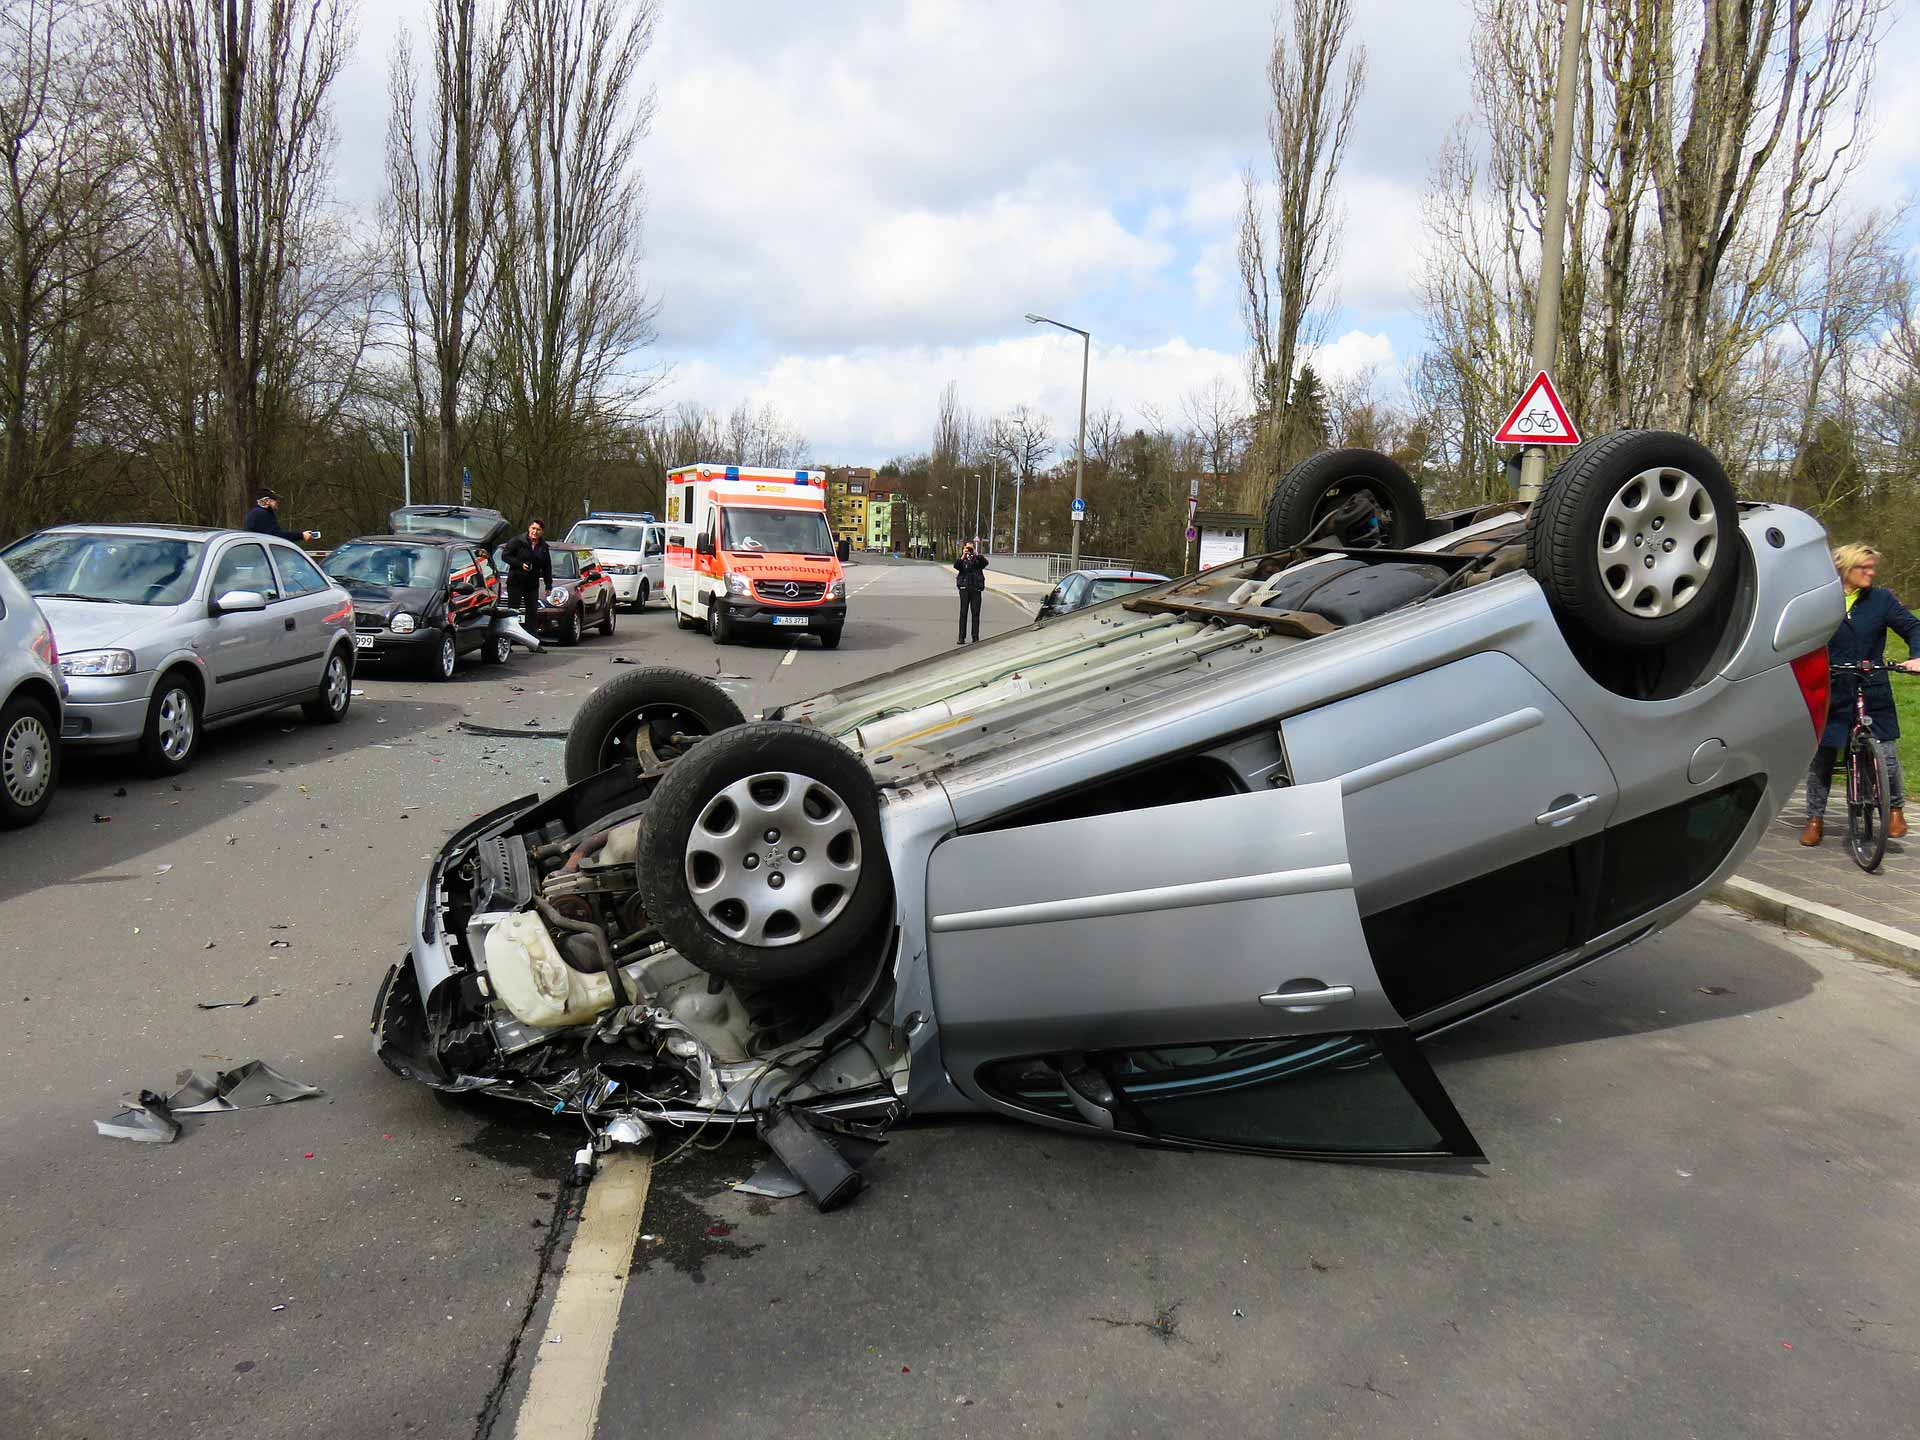 Road Traffic Accidents - Have you been a victim? Start your claim today